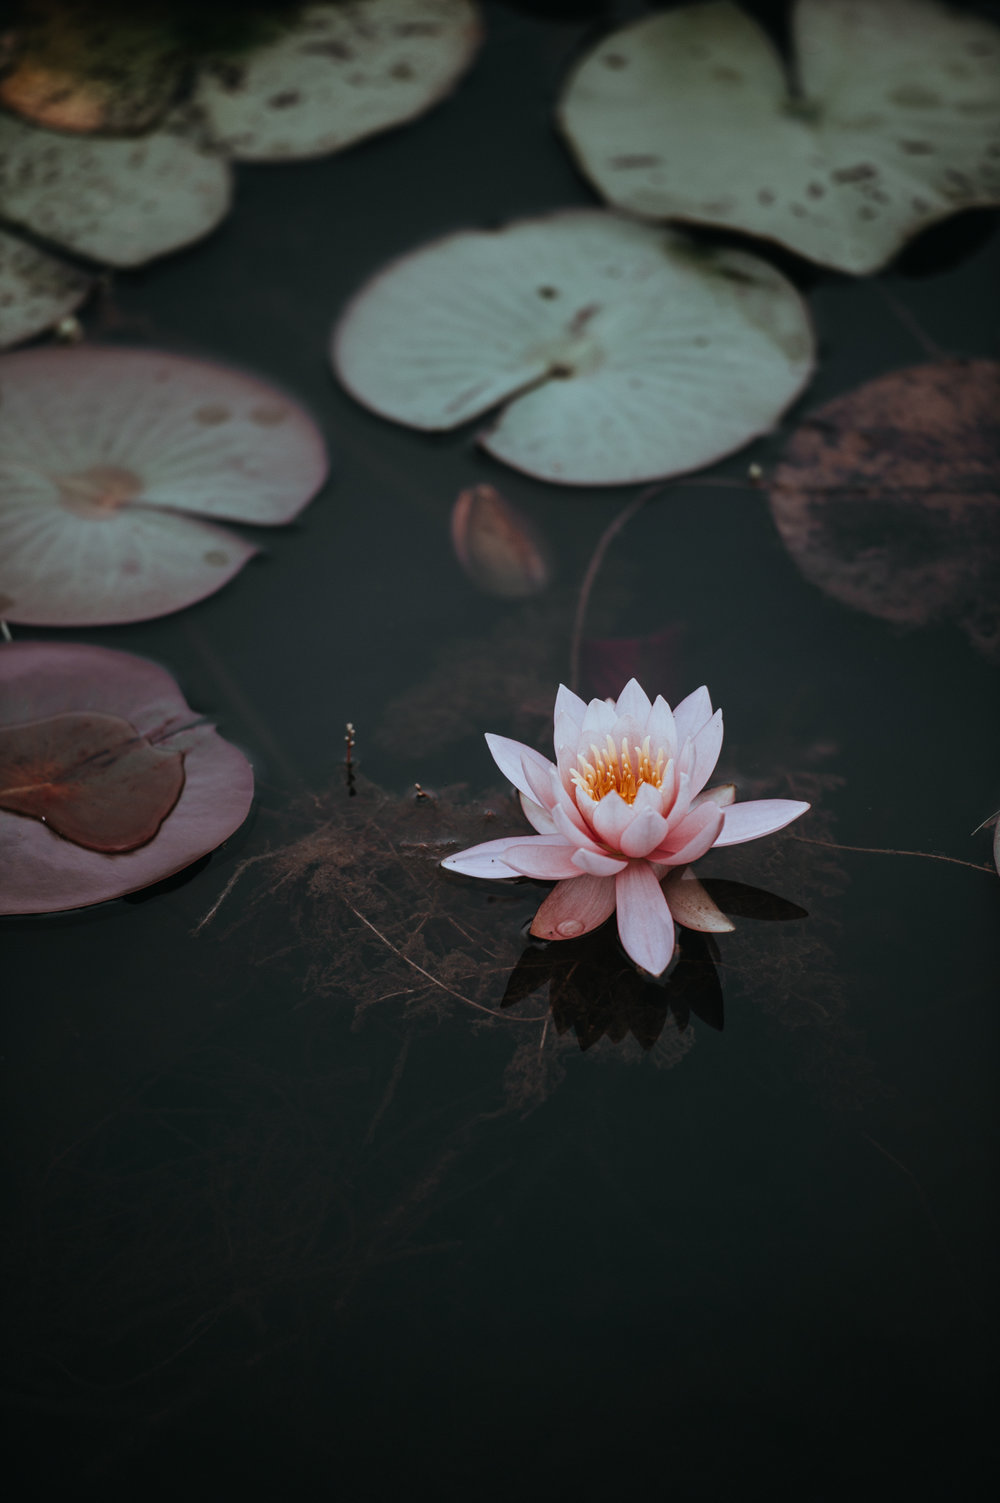 Lily Pad no. 2° by Annie Spratt